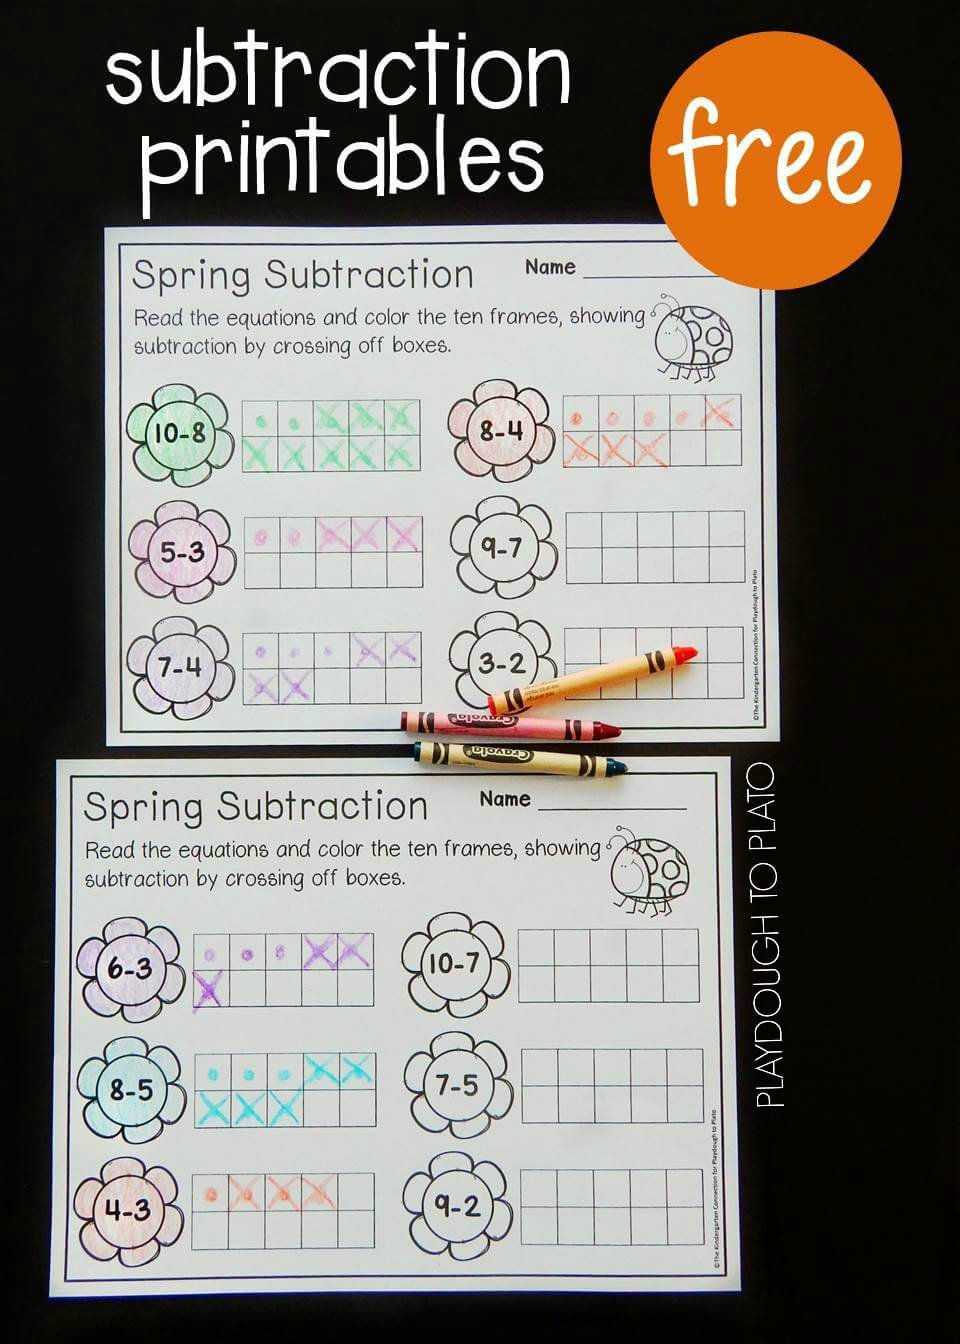 spring subtraction pin